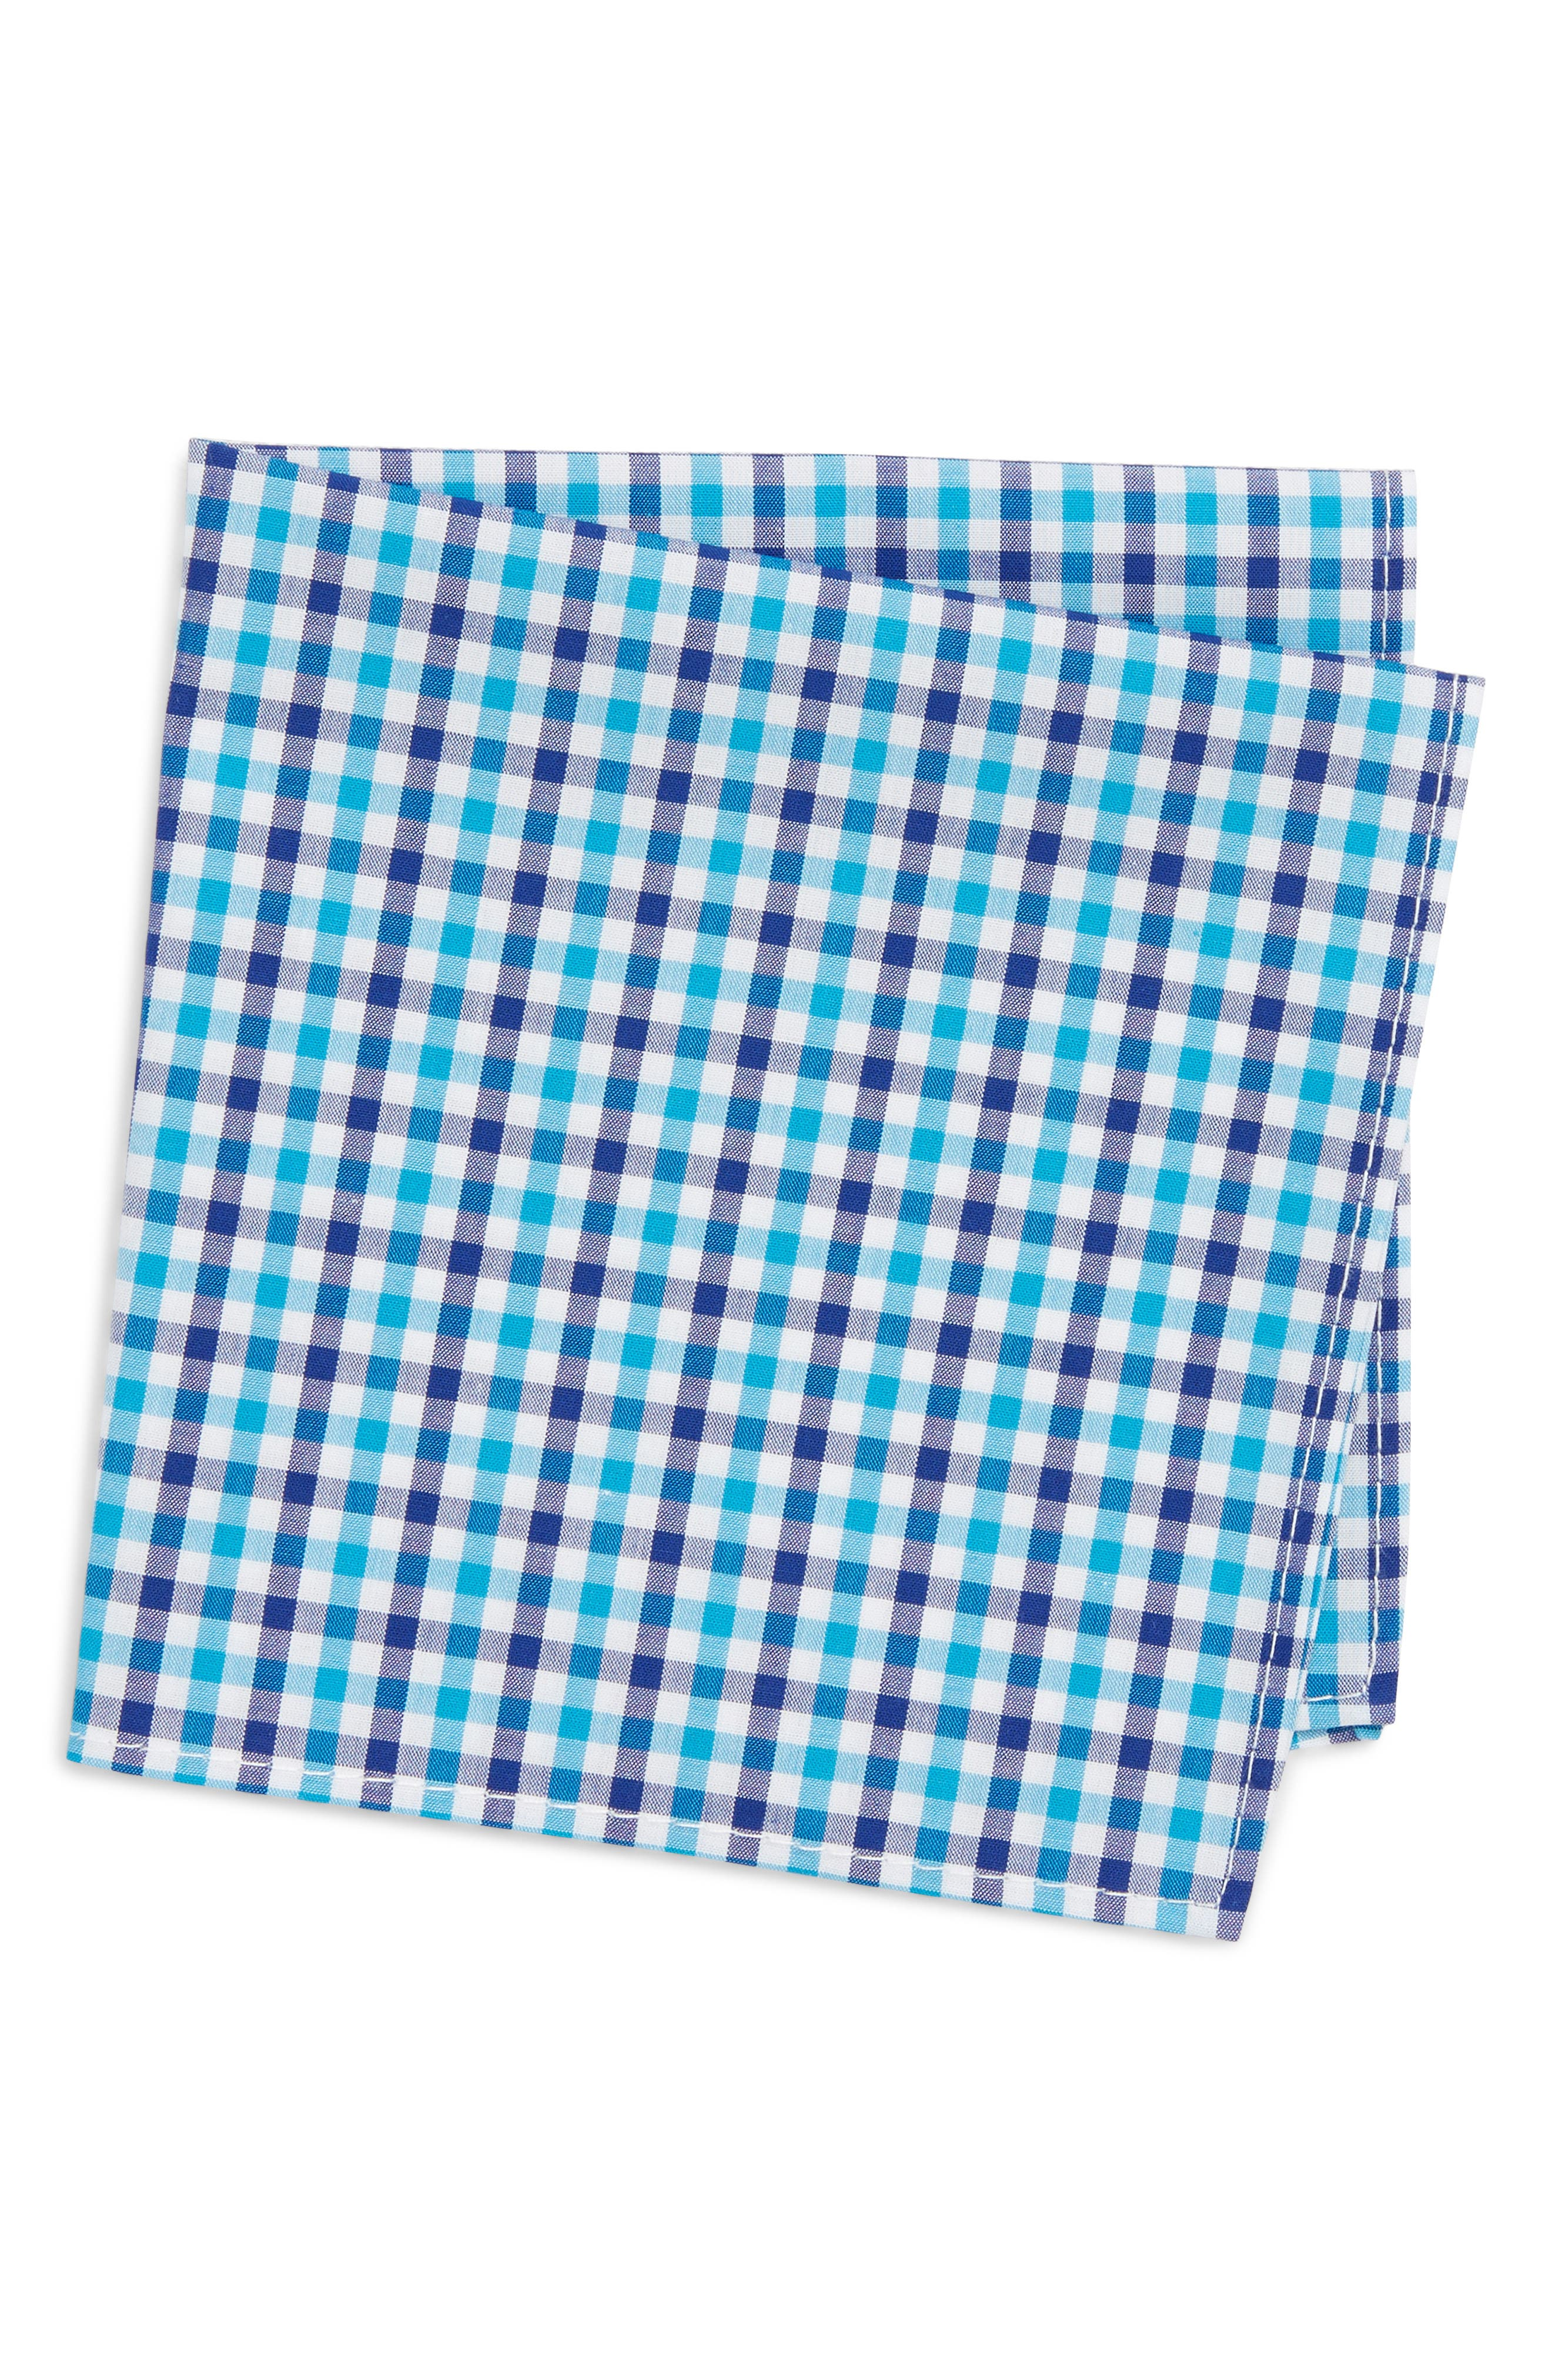 Gingham Pocket Square,                         Main,                         color, TURQUOISE